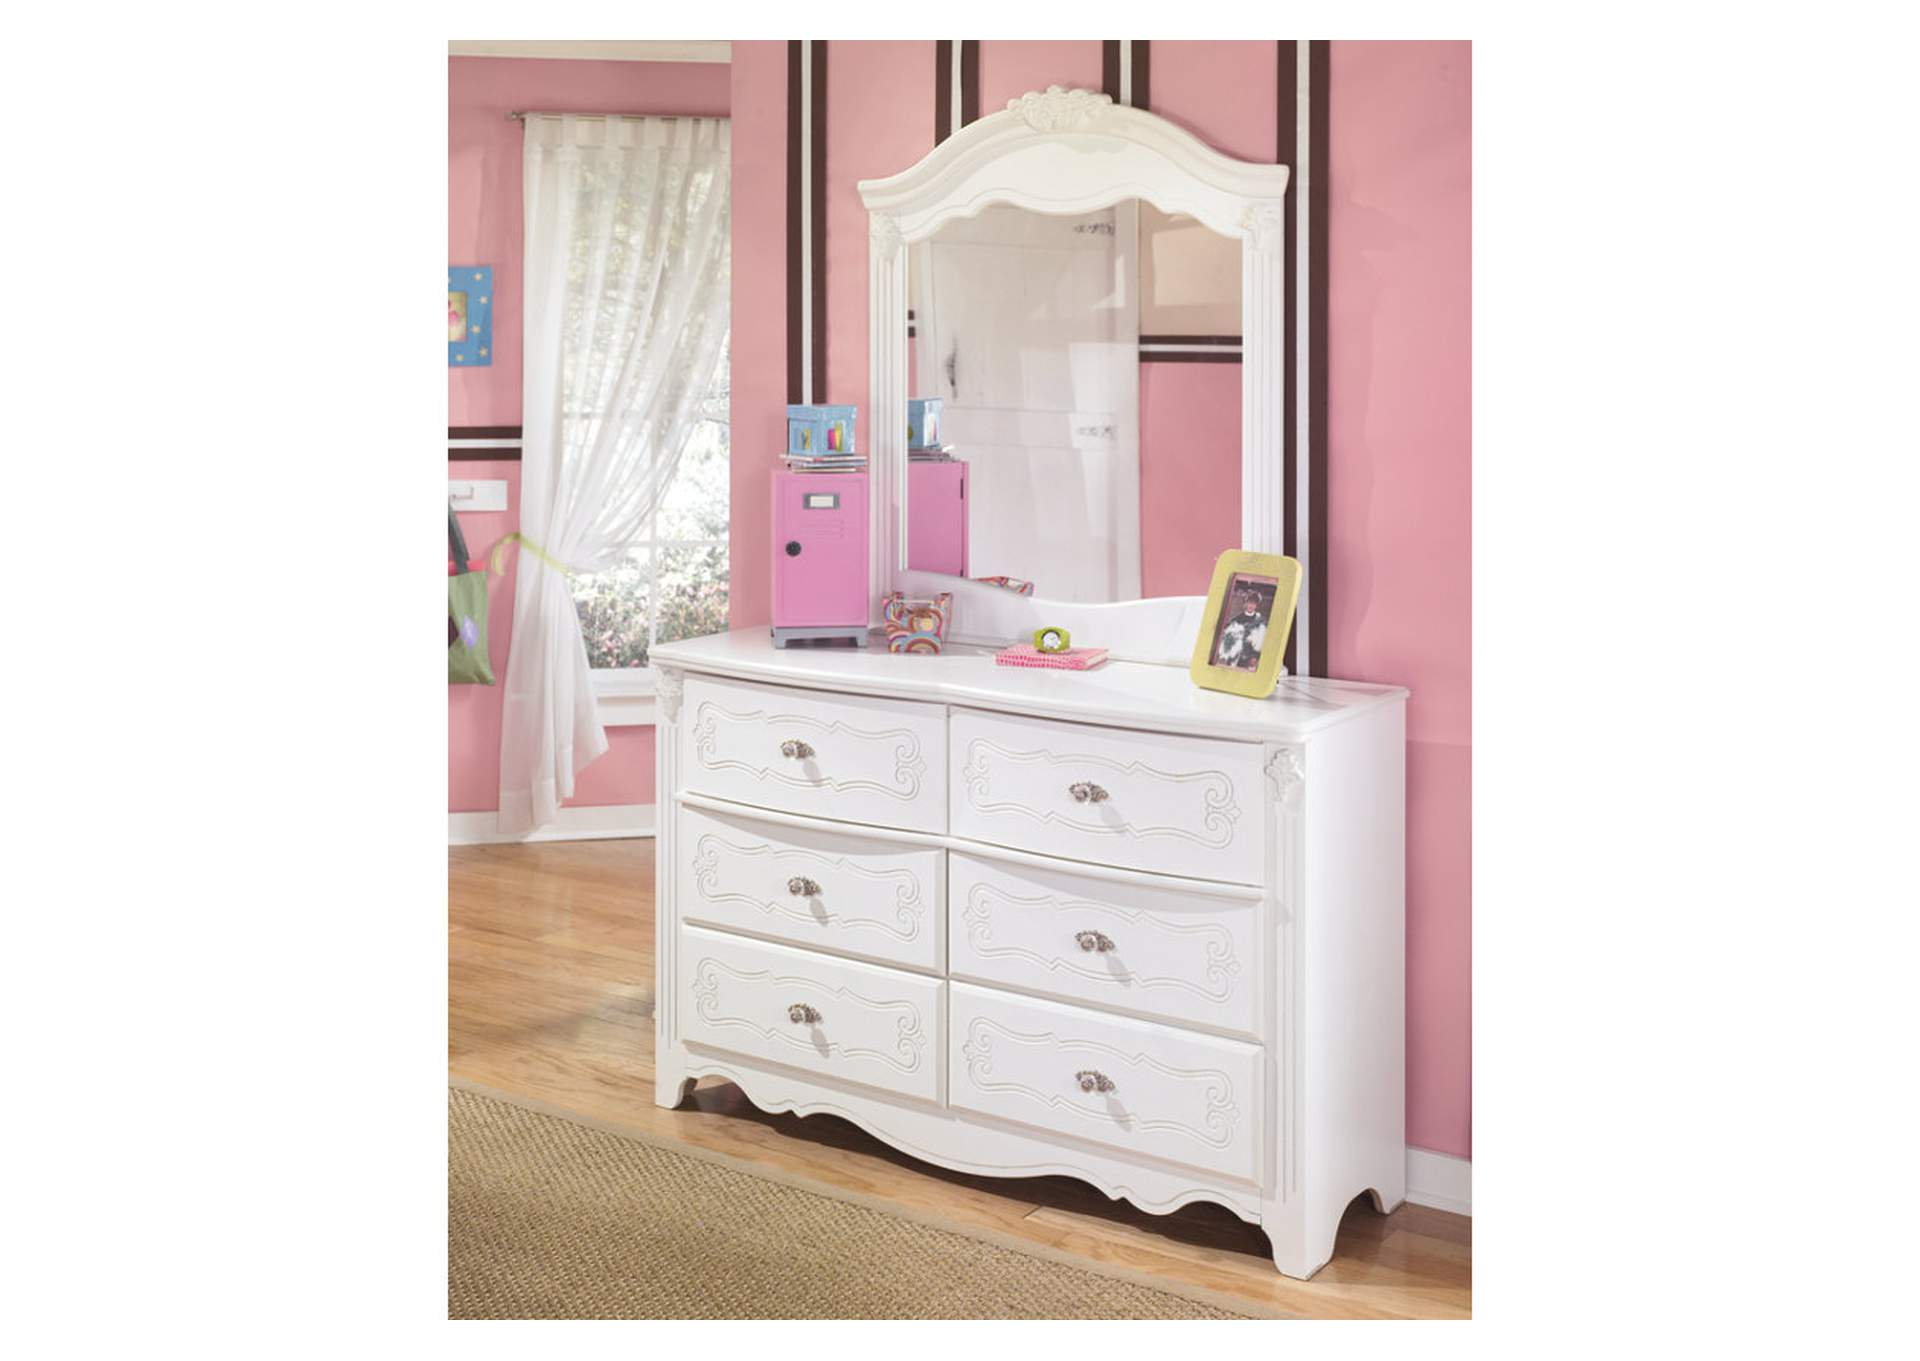 Exquisite Dresser,Signature Design by Ashley